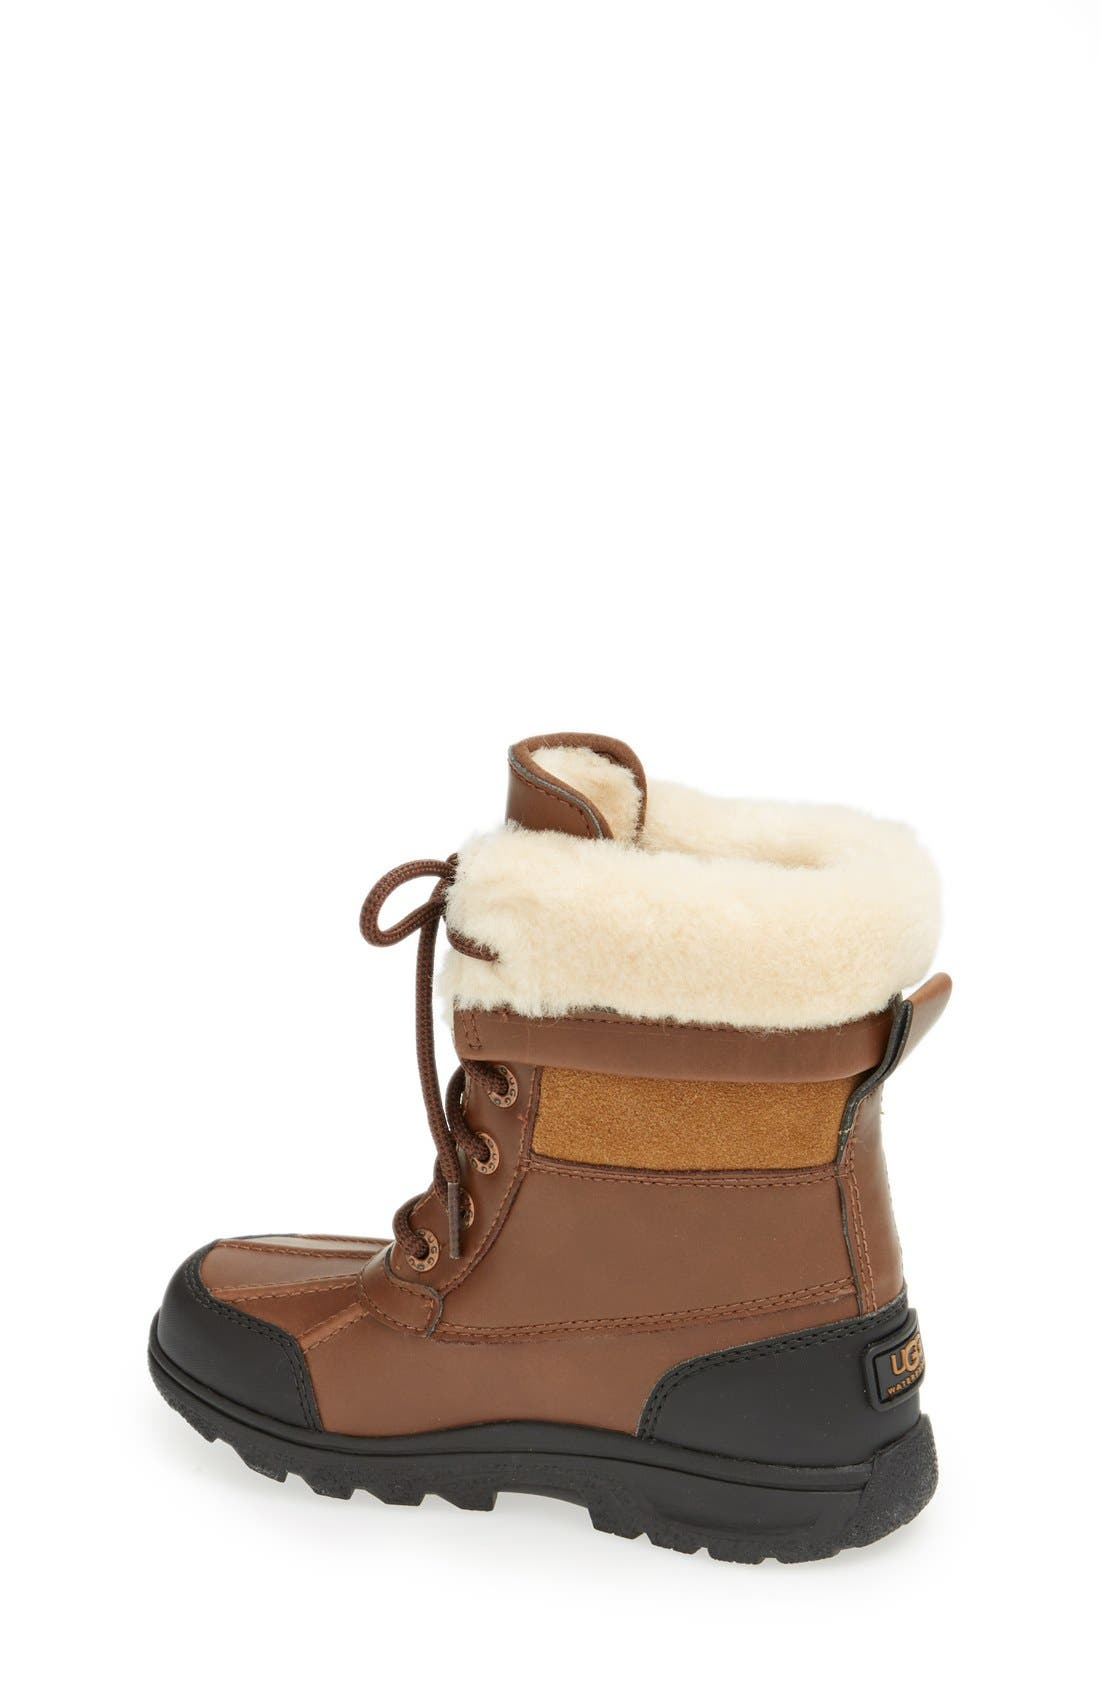 'Butte II' Waterproof Leather Boot,                             Alternate thumbnail 11, color,